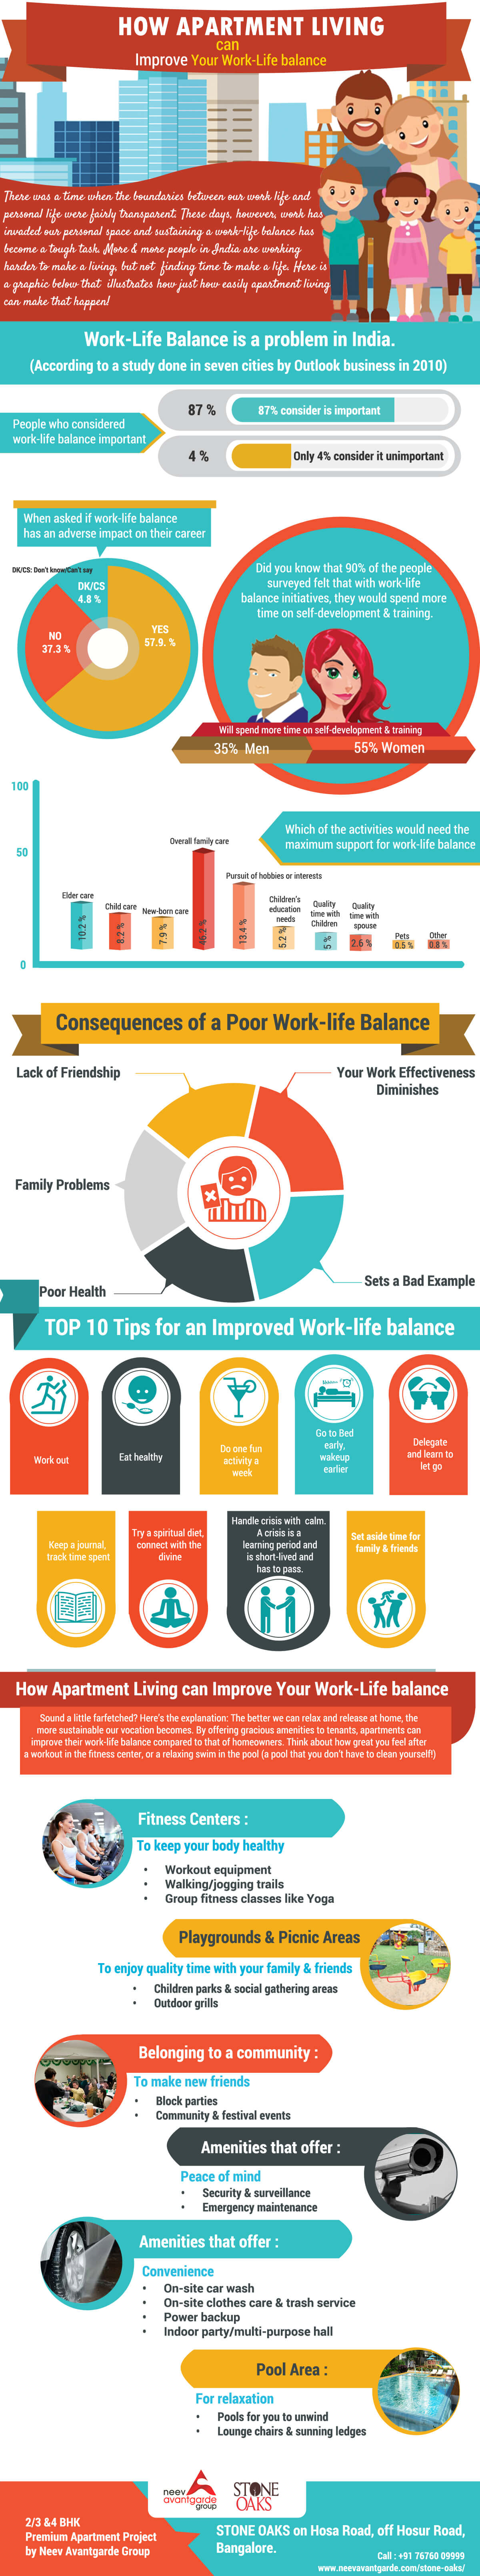 Apartment-Living-Work-Life-Balance-infographic-plaza